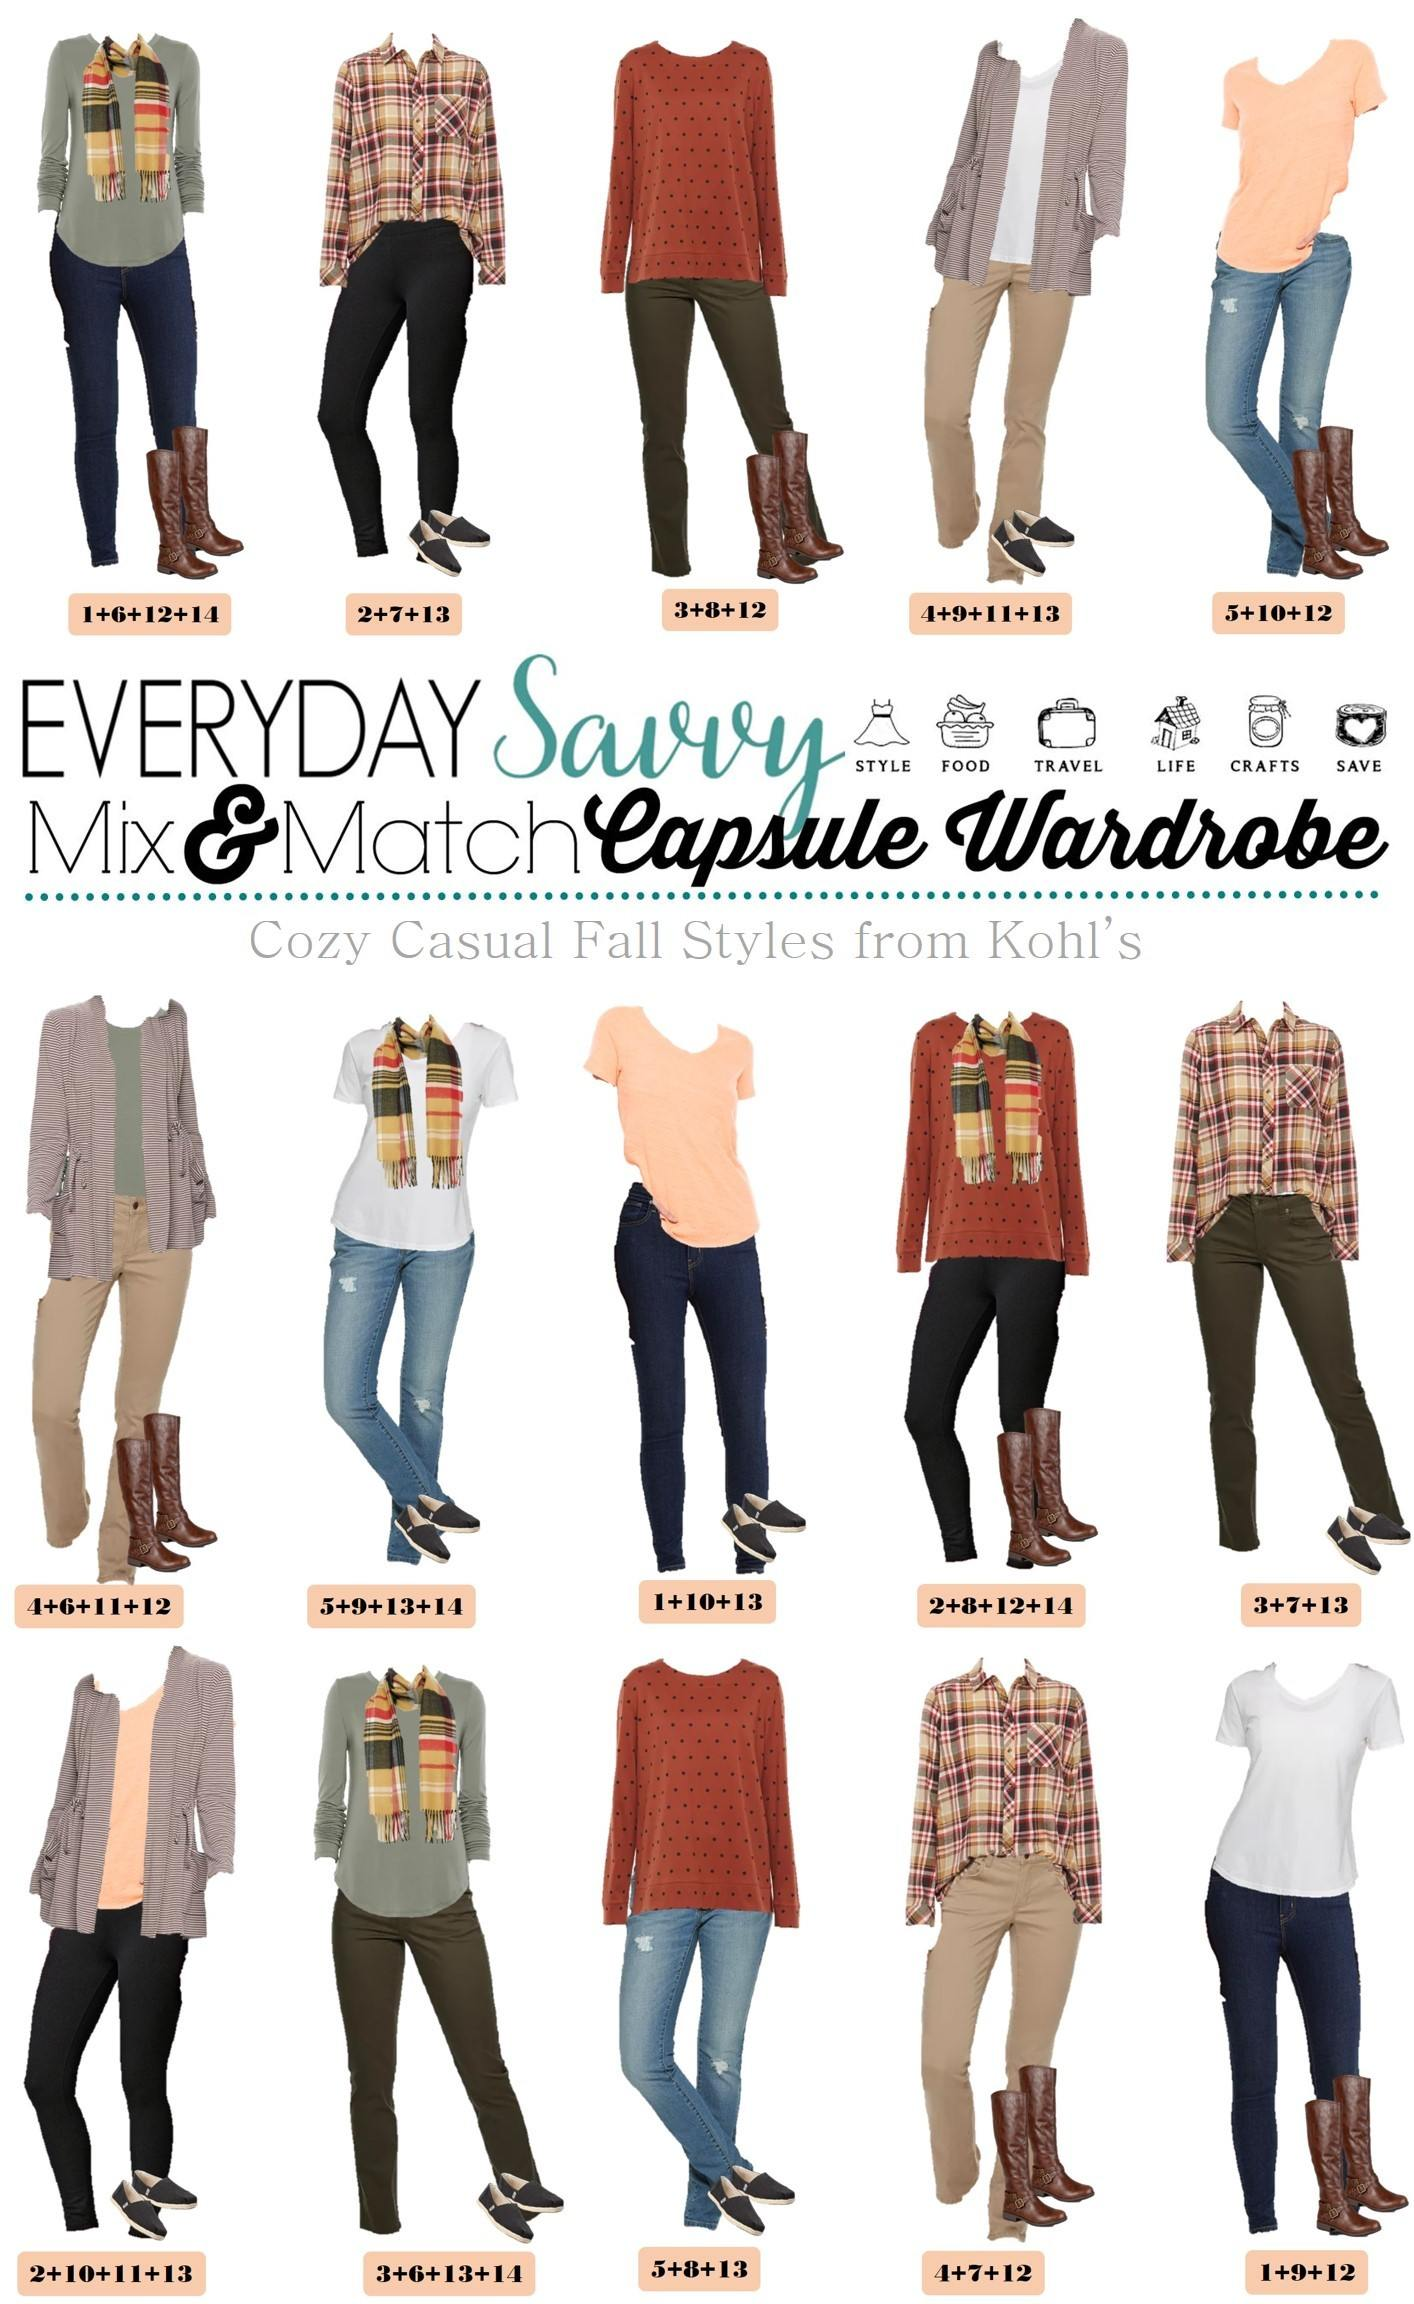 Casual Fall Outfits - Plaid shirt, jeans, sweatshirt etc.